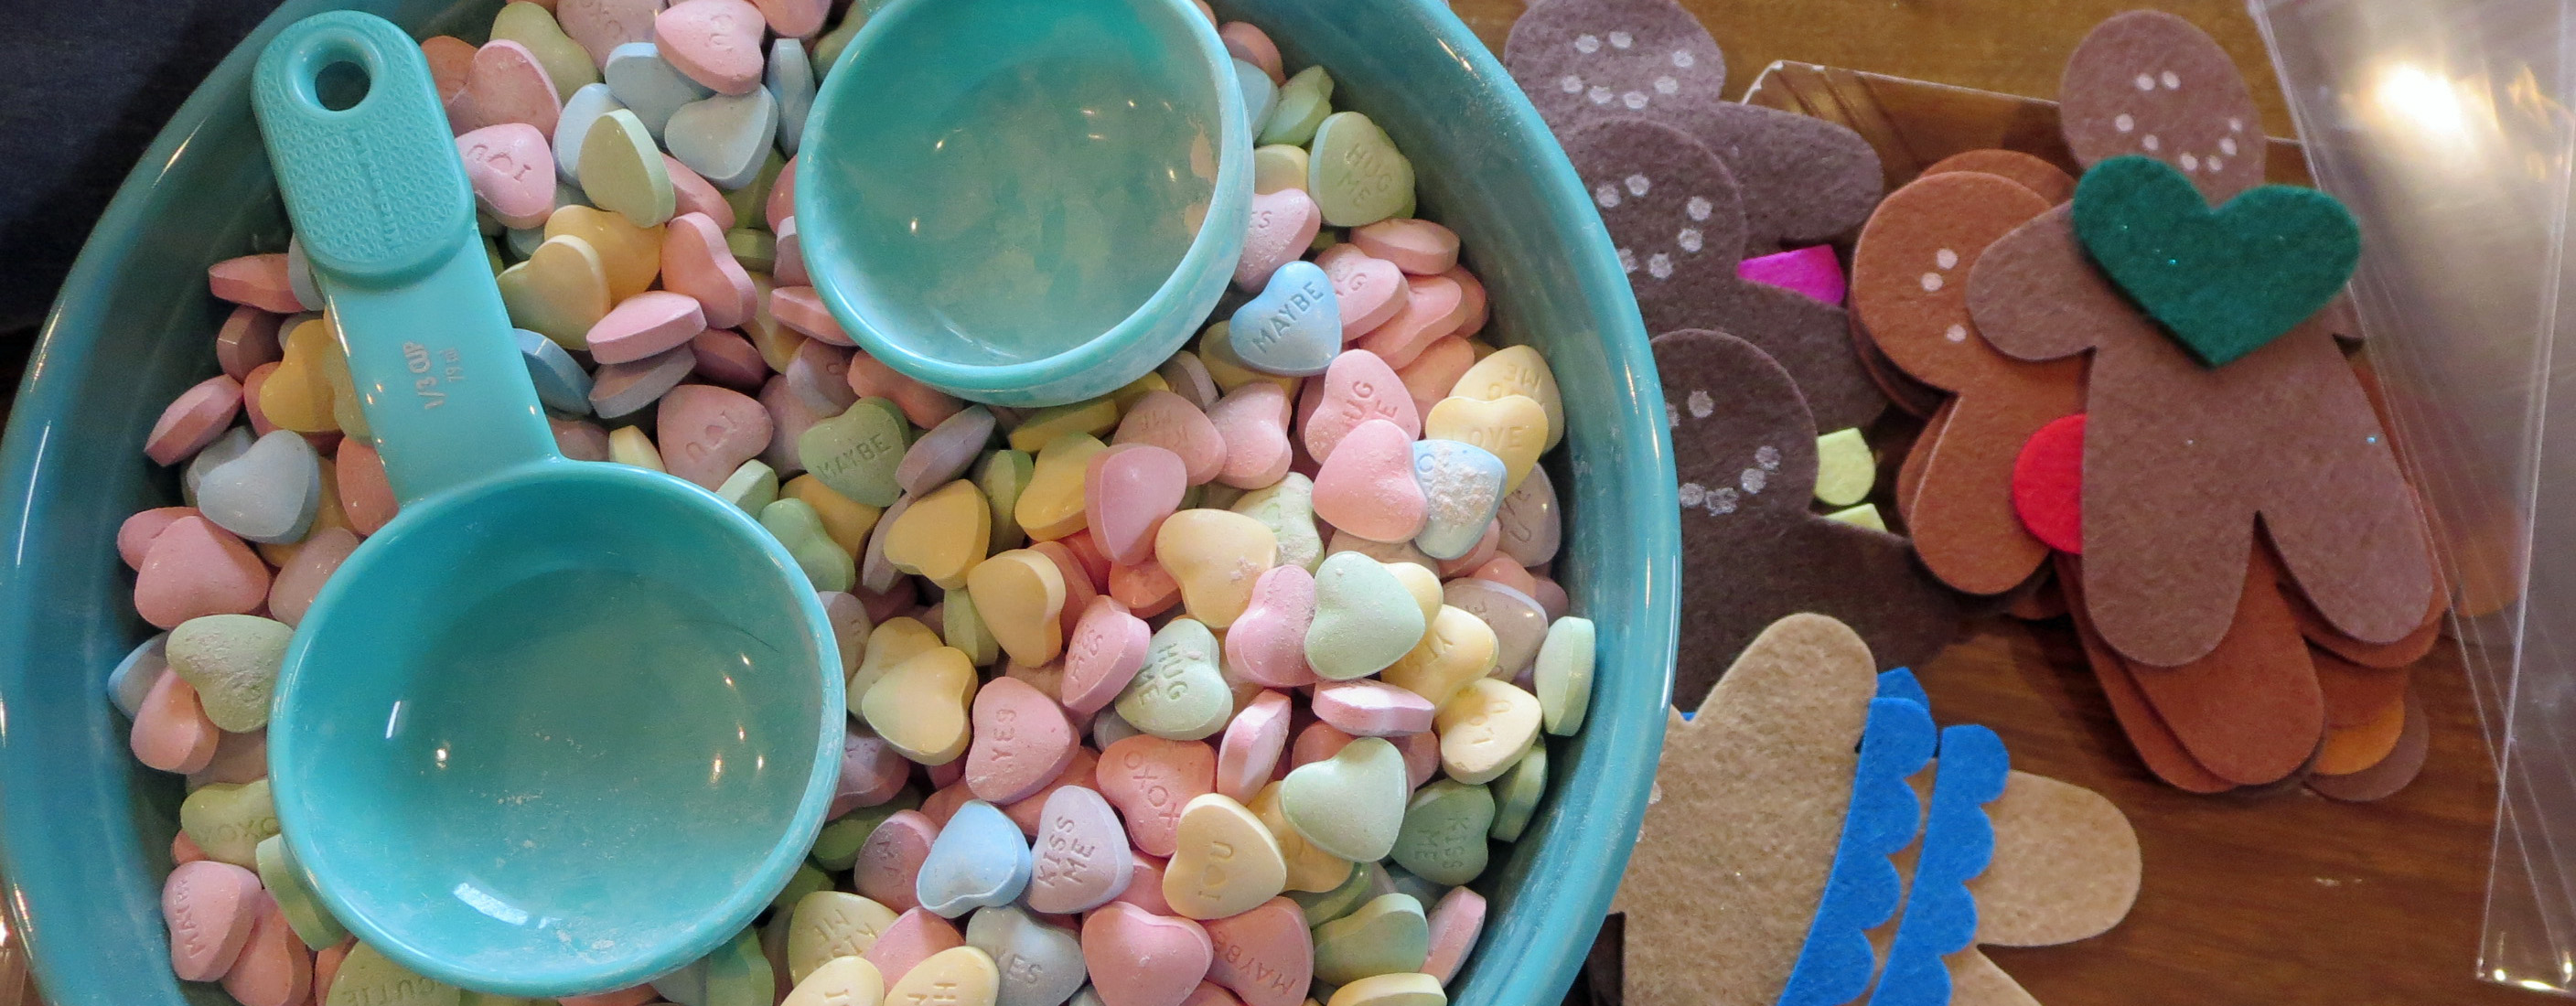 teal bowl of sweetheart candies next to brown felt gingerbread shapes with blue scallop dresses and green felt heart